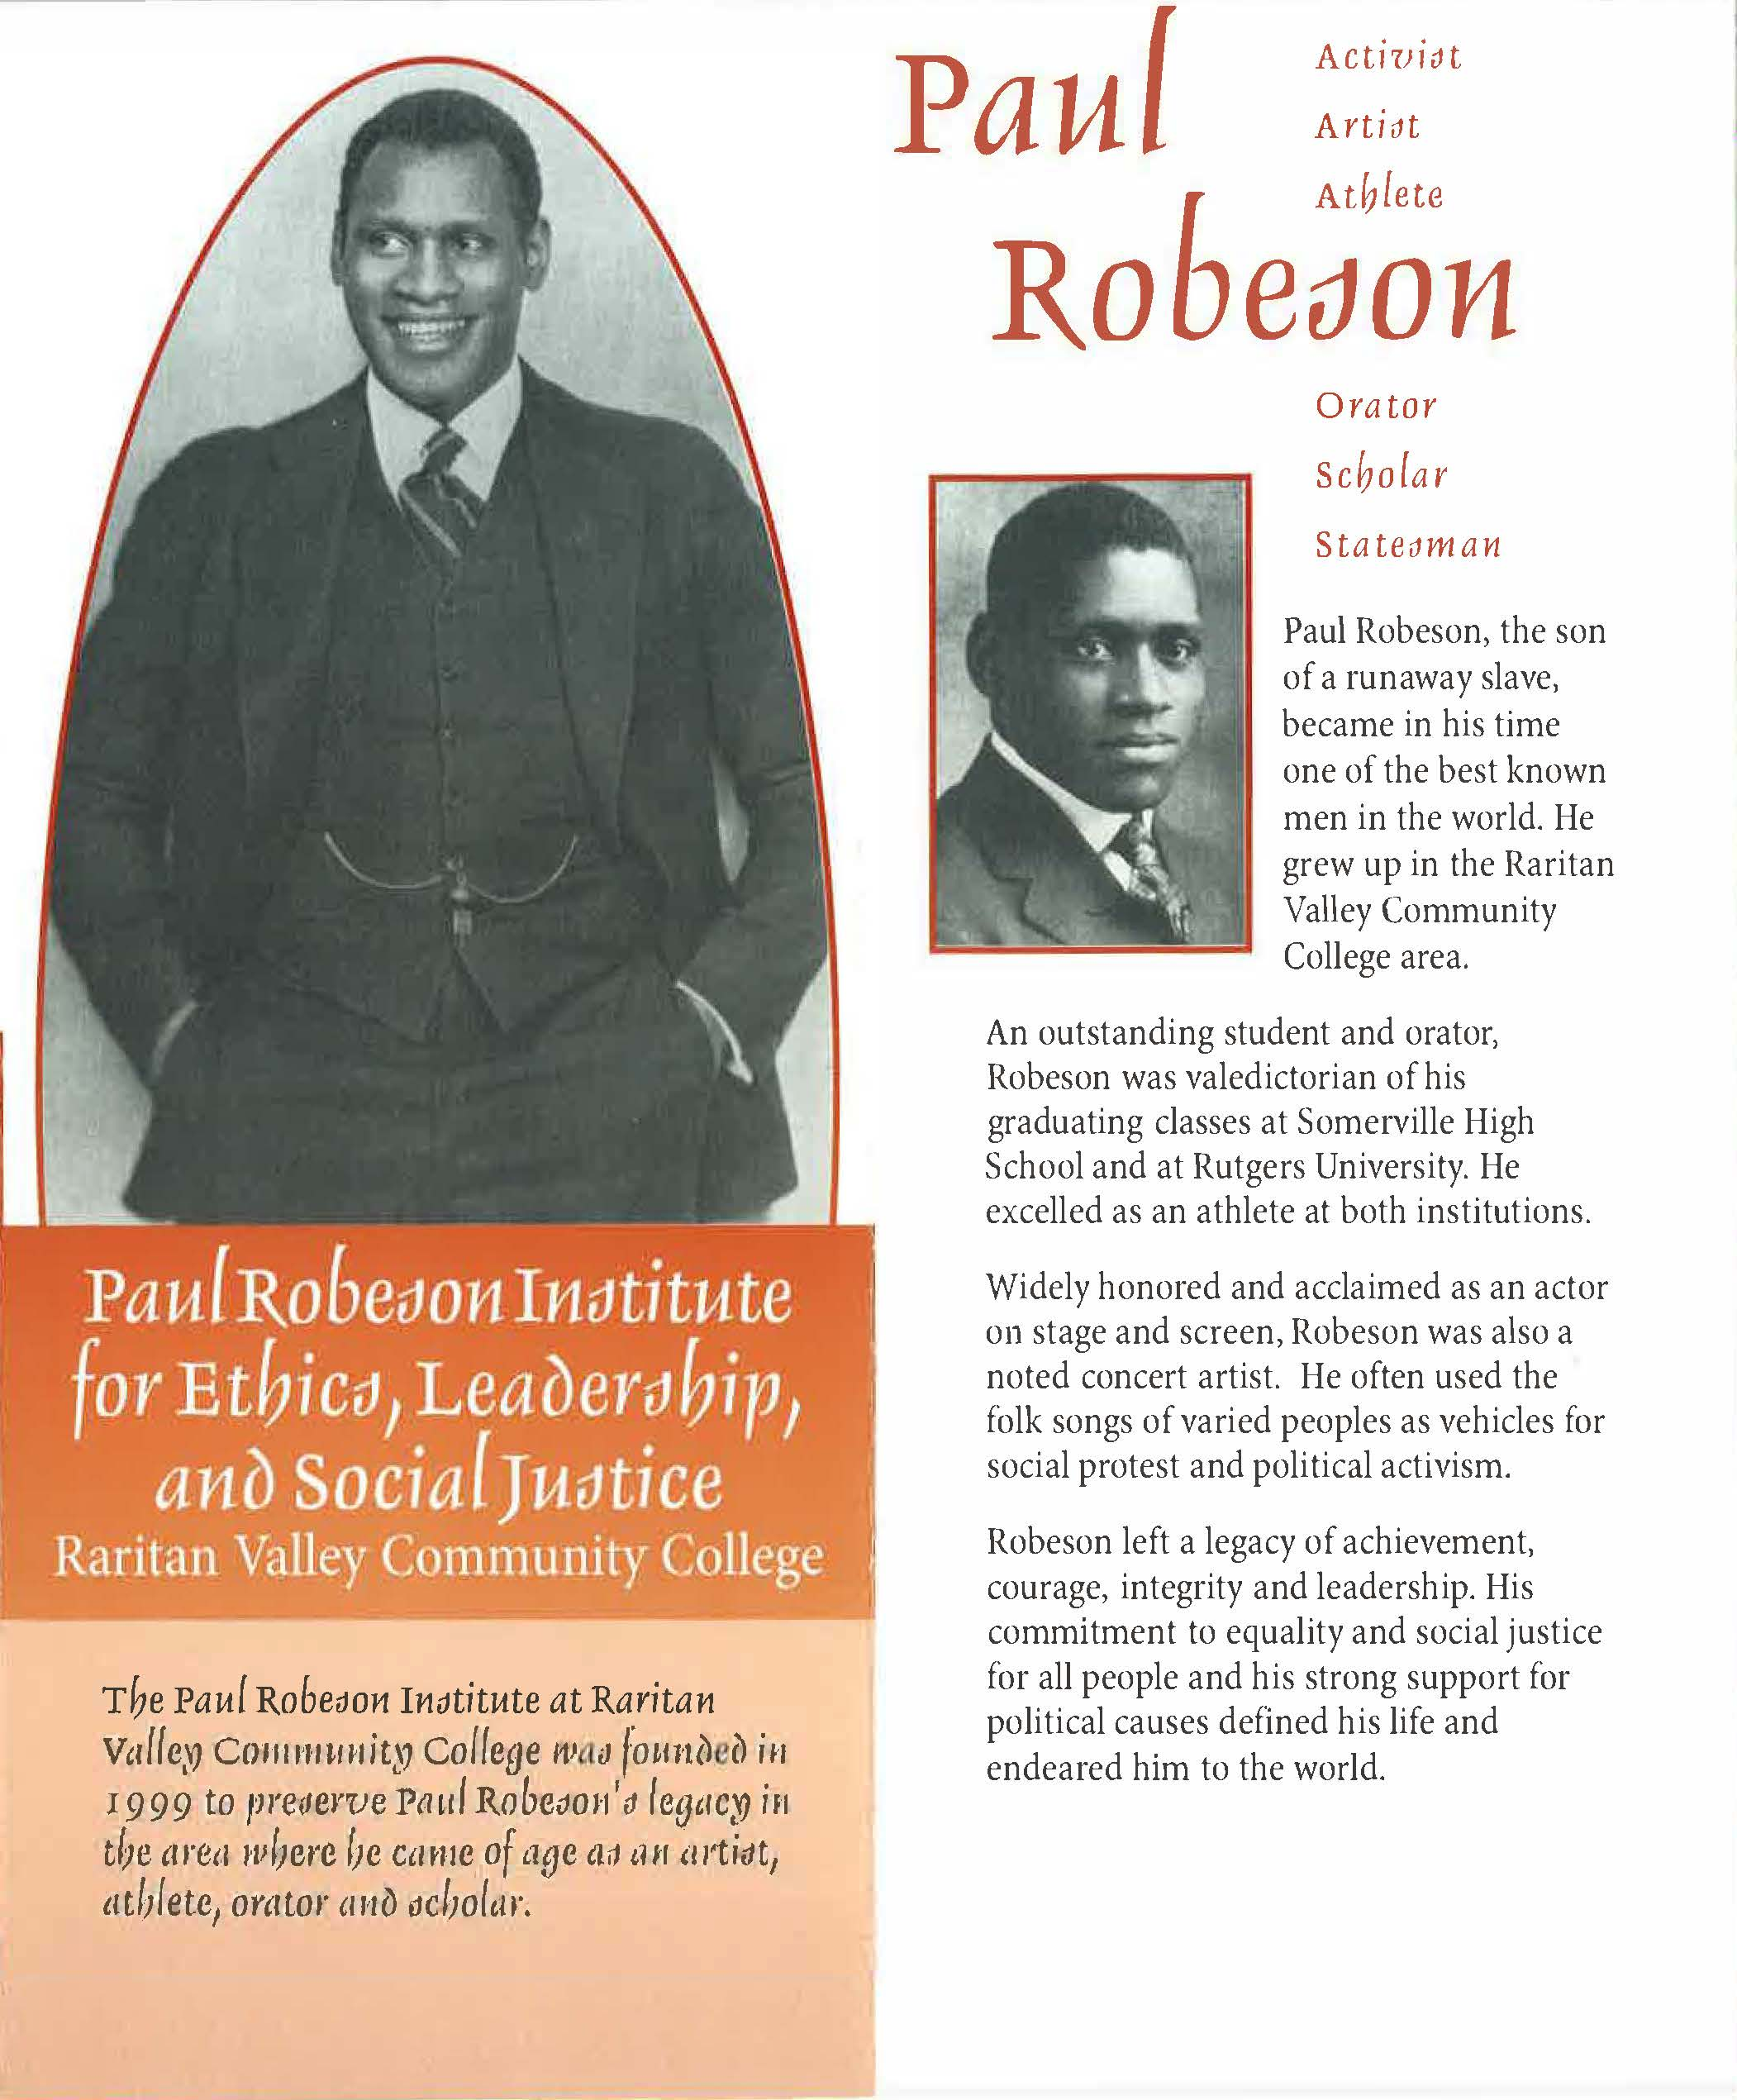 Paul Robeson Institute for Ethics, Leadership and Social Justice